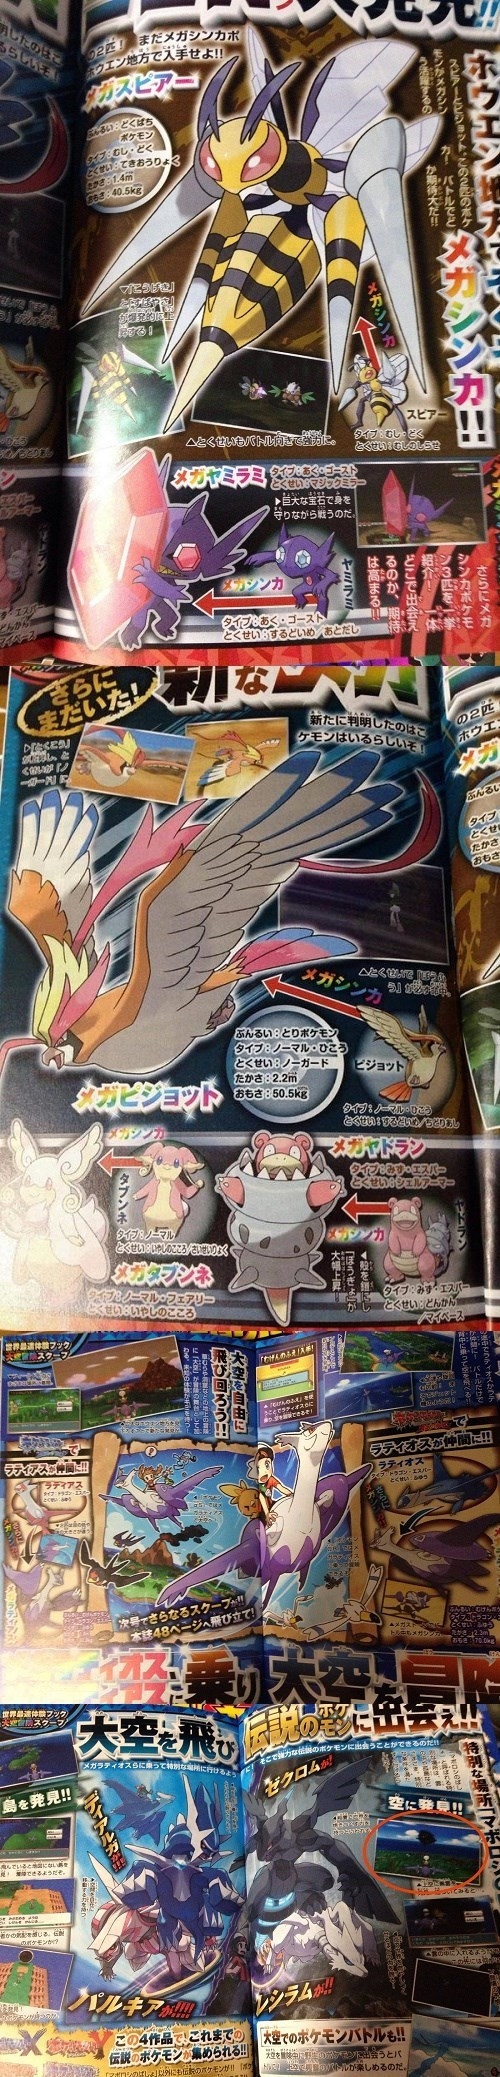 corocoro,serebii,mega latias,mega latios,ORAS,mega beedrill,mega pidgeot,Video Game Coverage